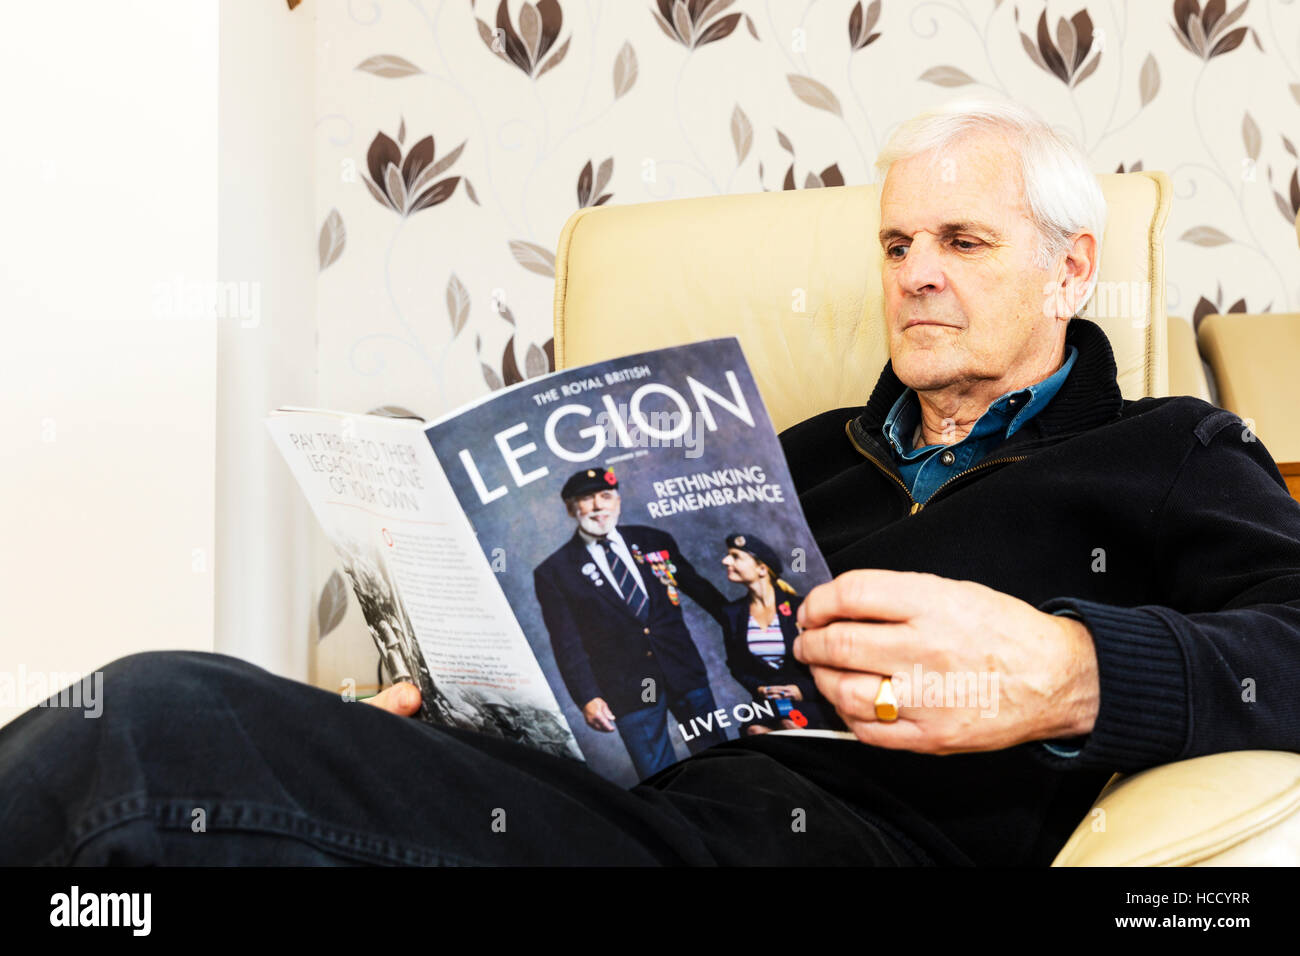 OAP reading British legion magazine man reading sat down relaxing looking at magazine at home UK England GB - Stock Image